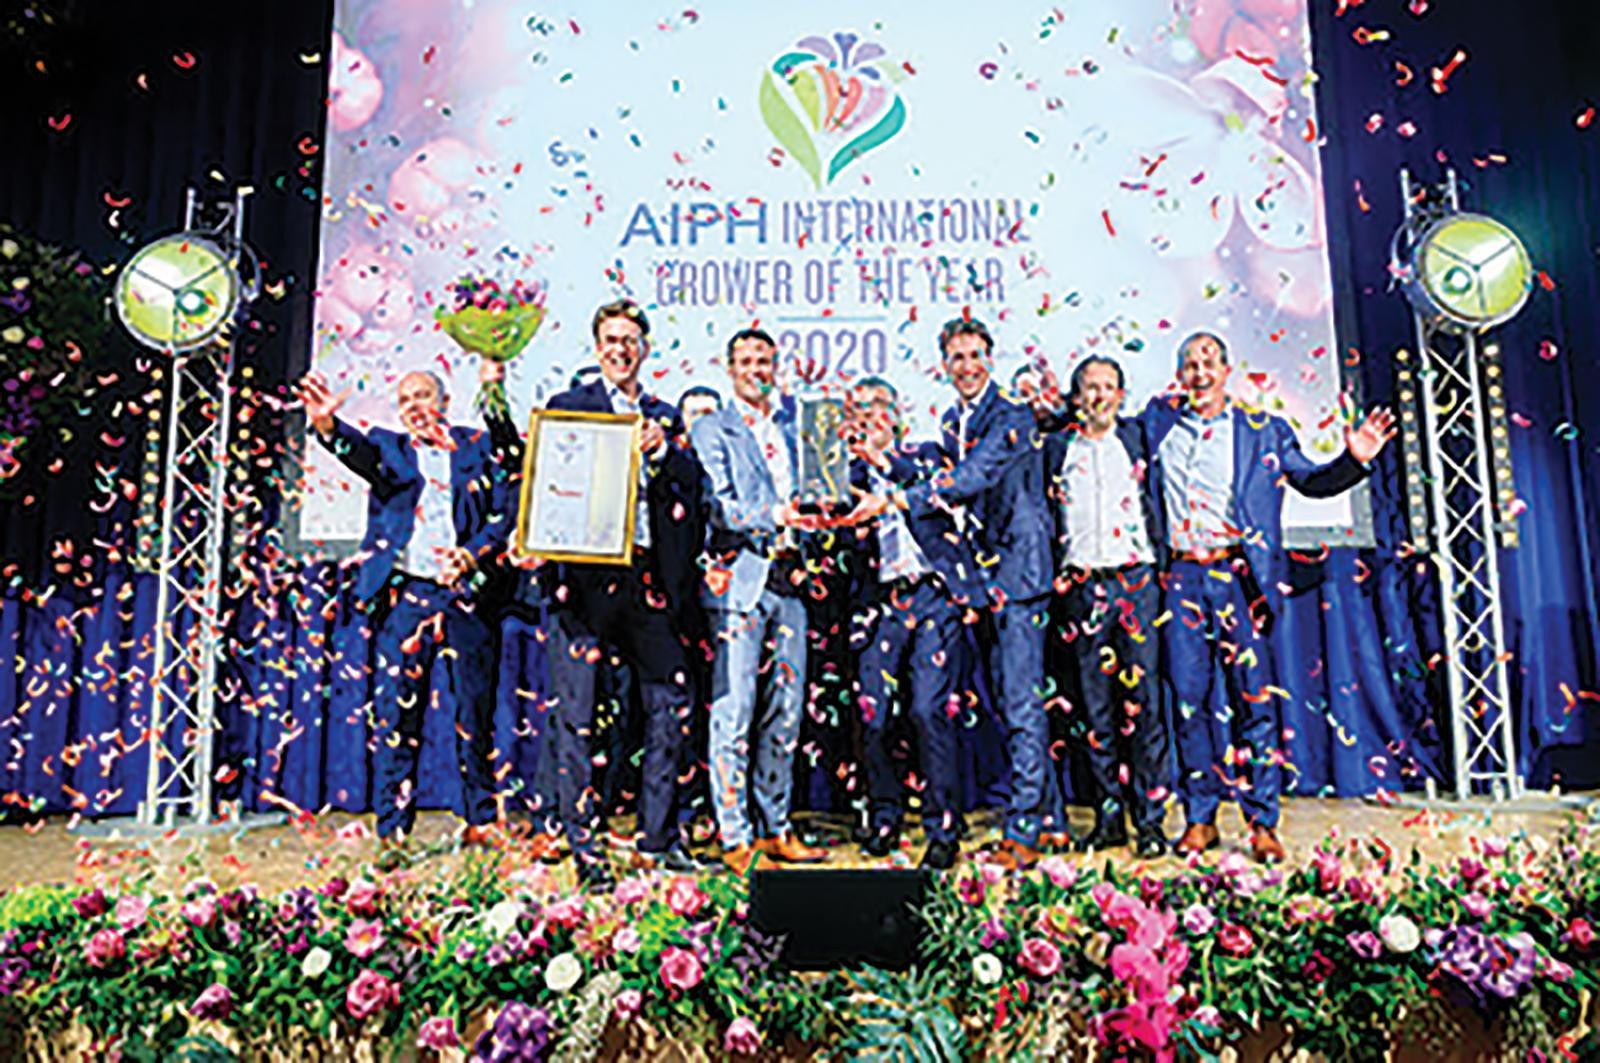 The 2020 AIPH International Grower of the Year Award  was won by Anthura.